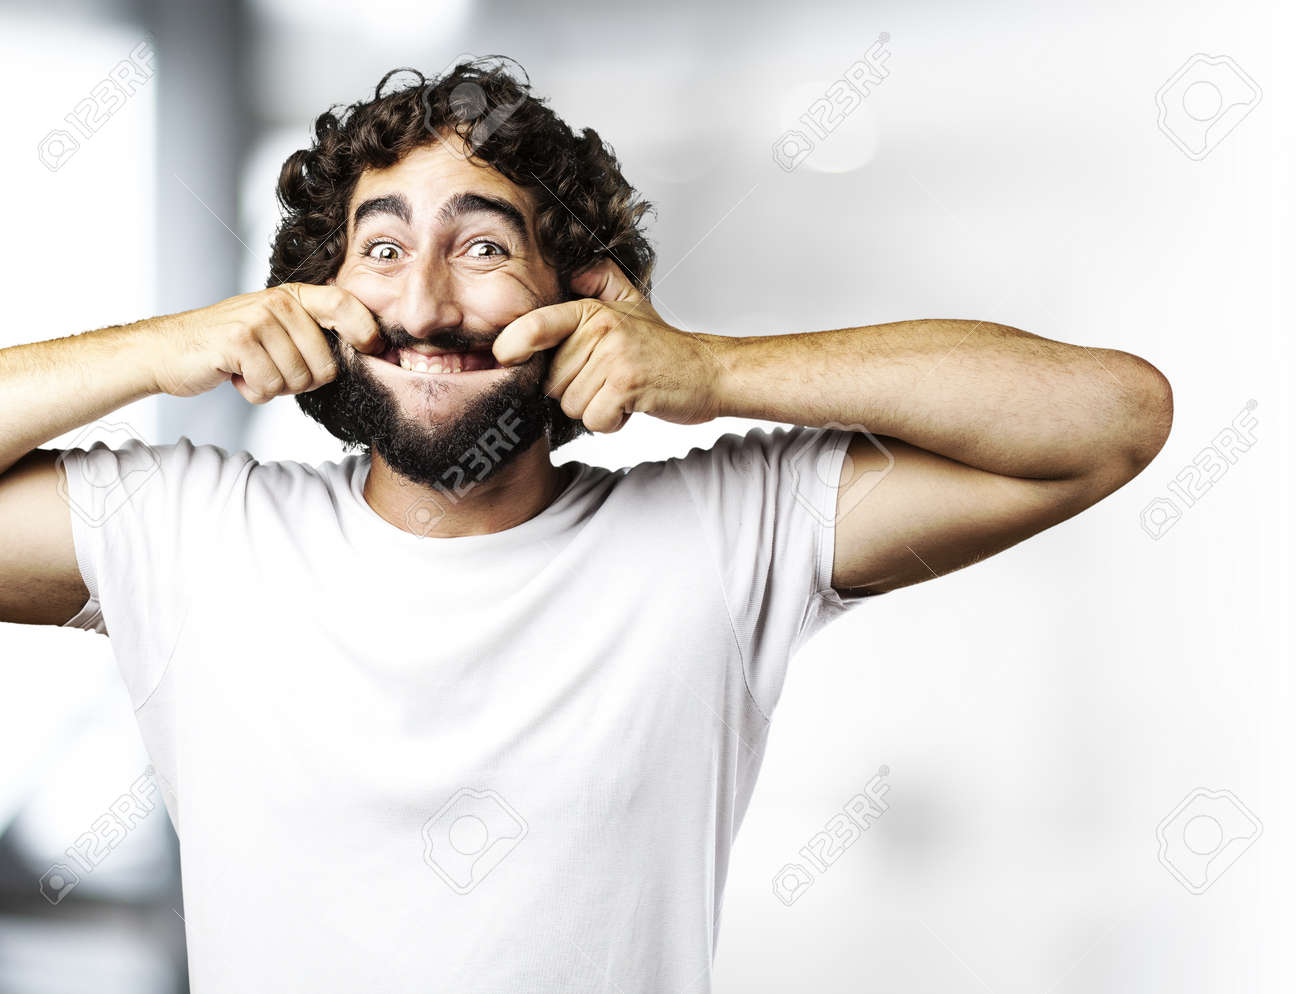 portrait of young man pulling his mouth smiling indoor Stock Photo - 13156544